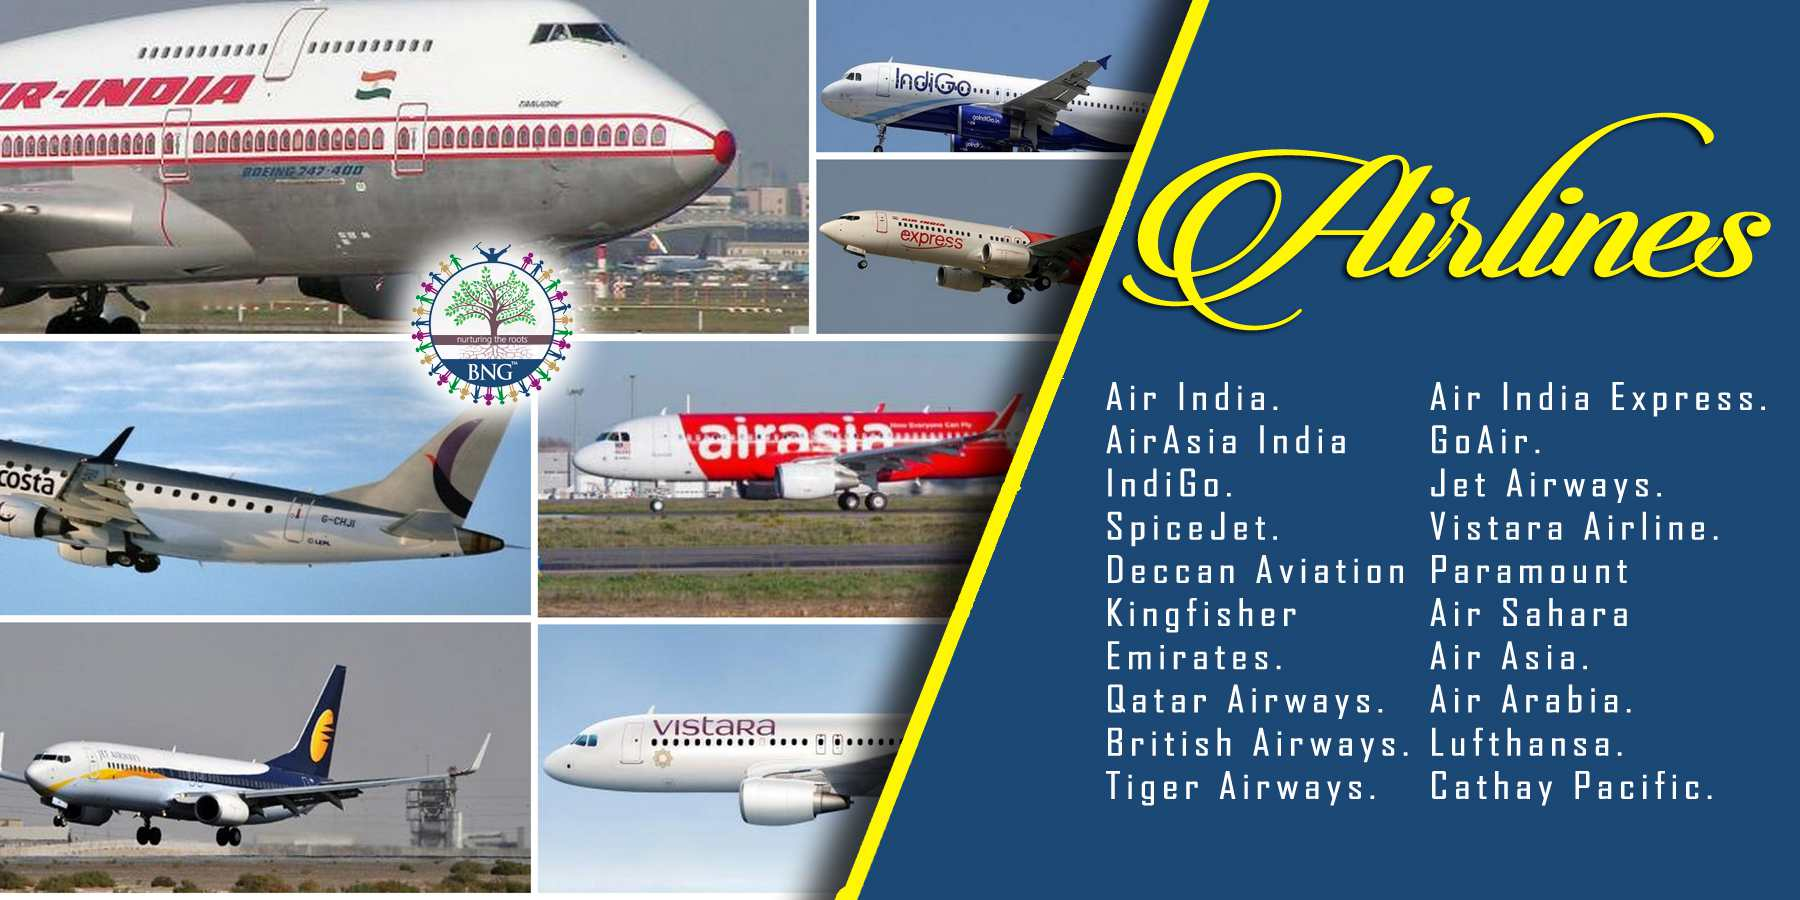 Airlines Jobs by BNG Hotel Management kolkata companies